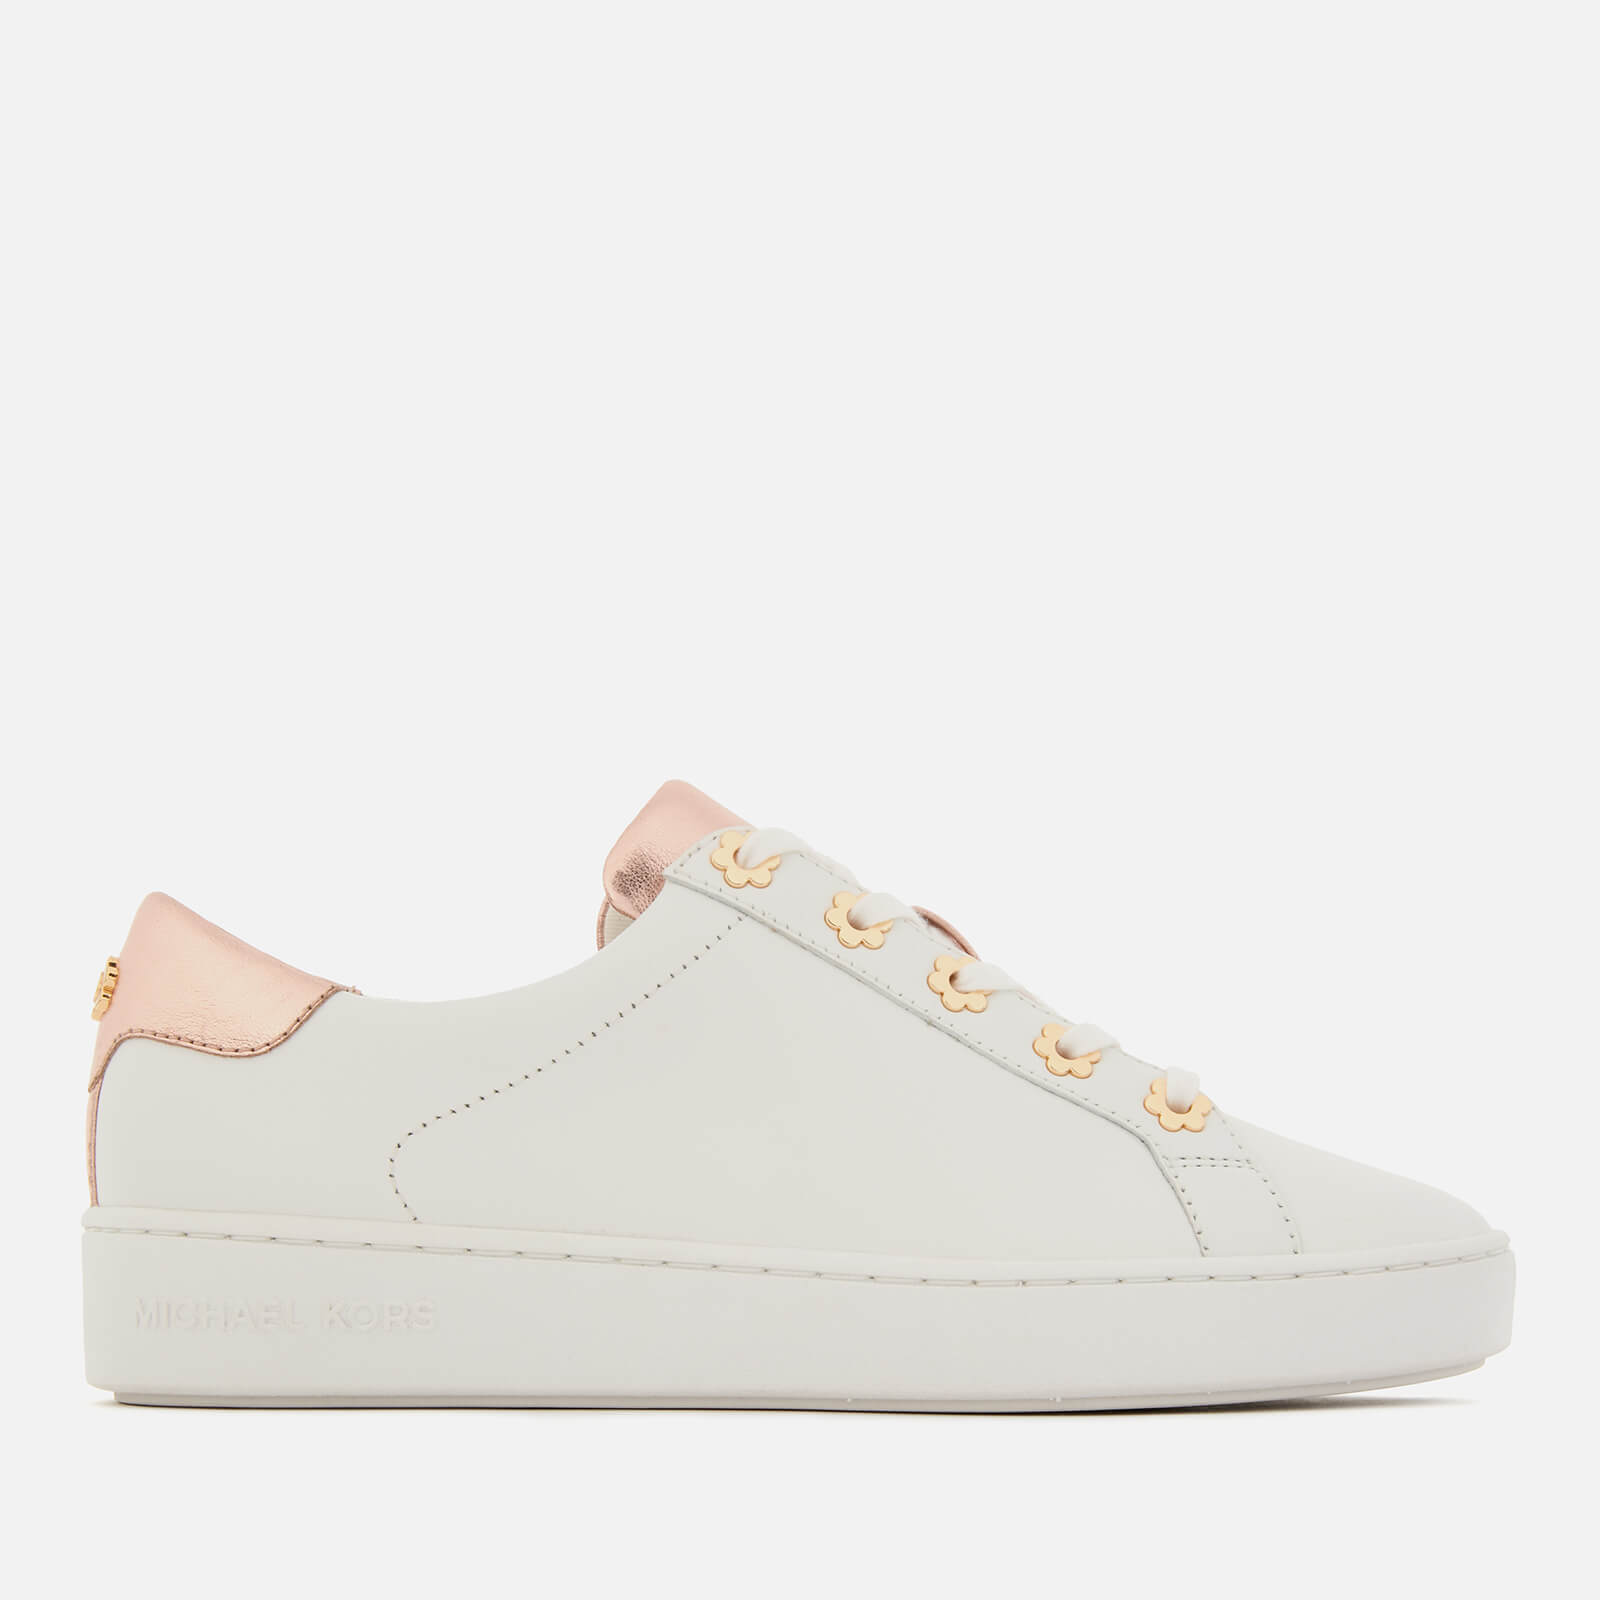 4db7c0b7acf8 MICHAEL MICHAEL KORS Women s Irving Cupsole Trainers - Optic Rose Gold  Womens Footwear